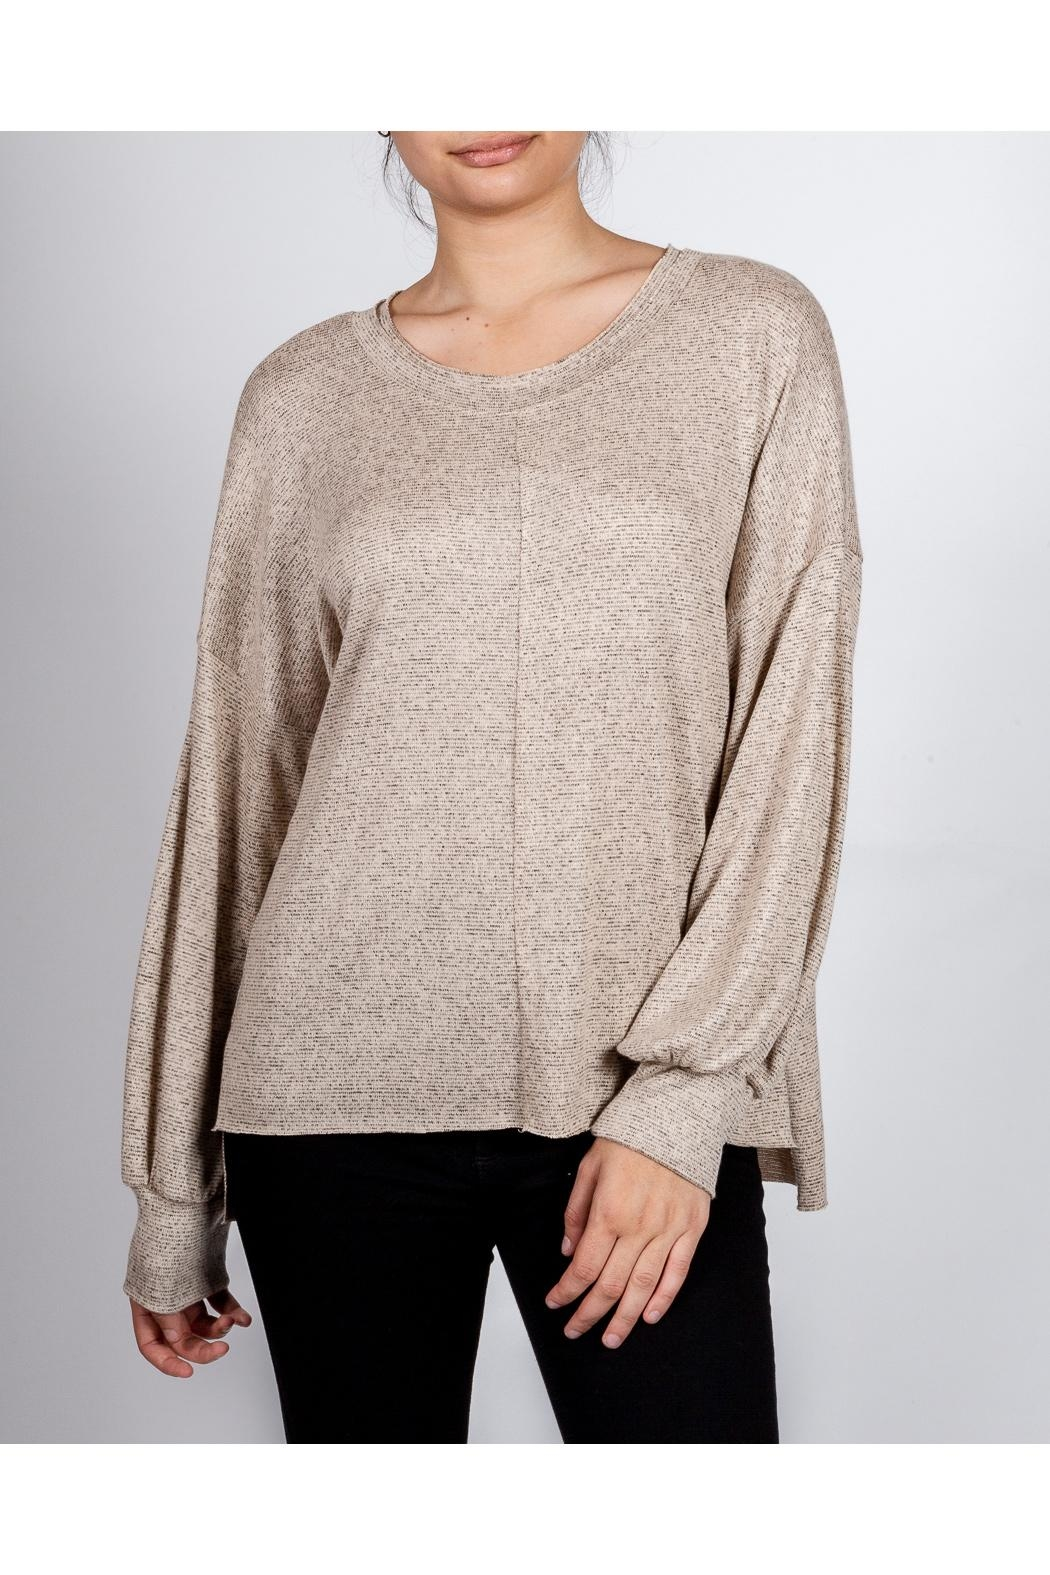 Final Touch Everyday Scoop-Neck Pullover - Main Image